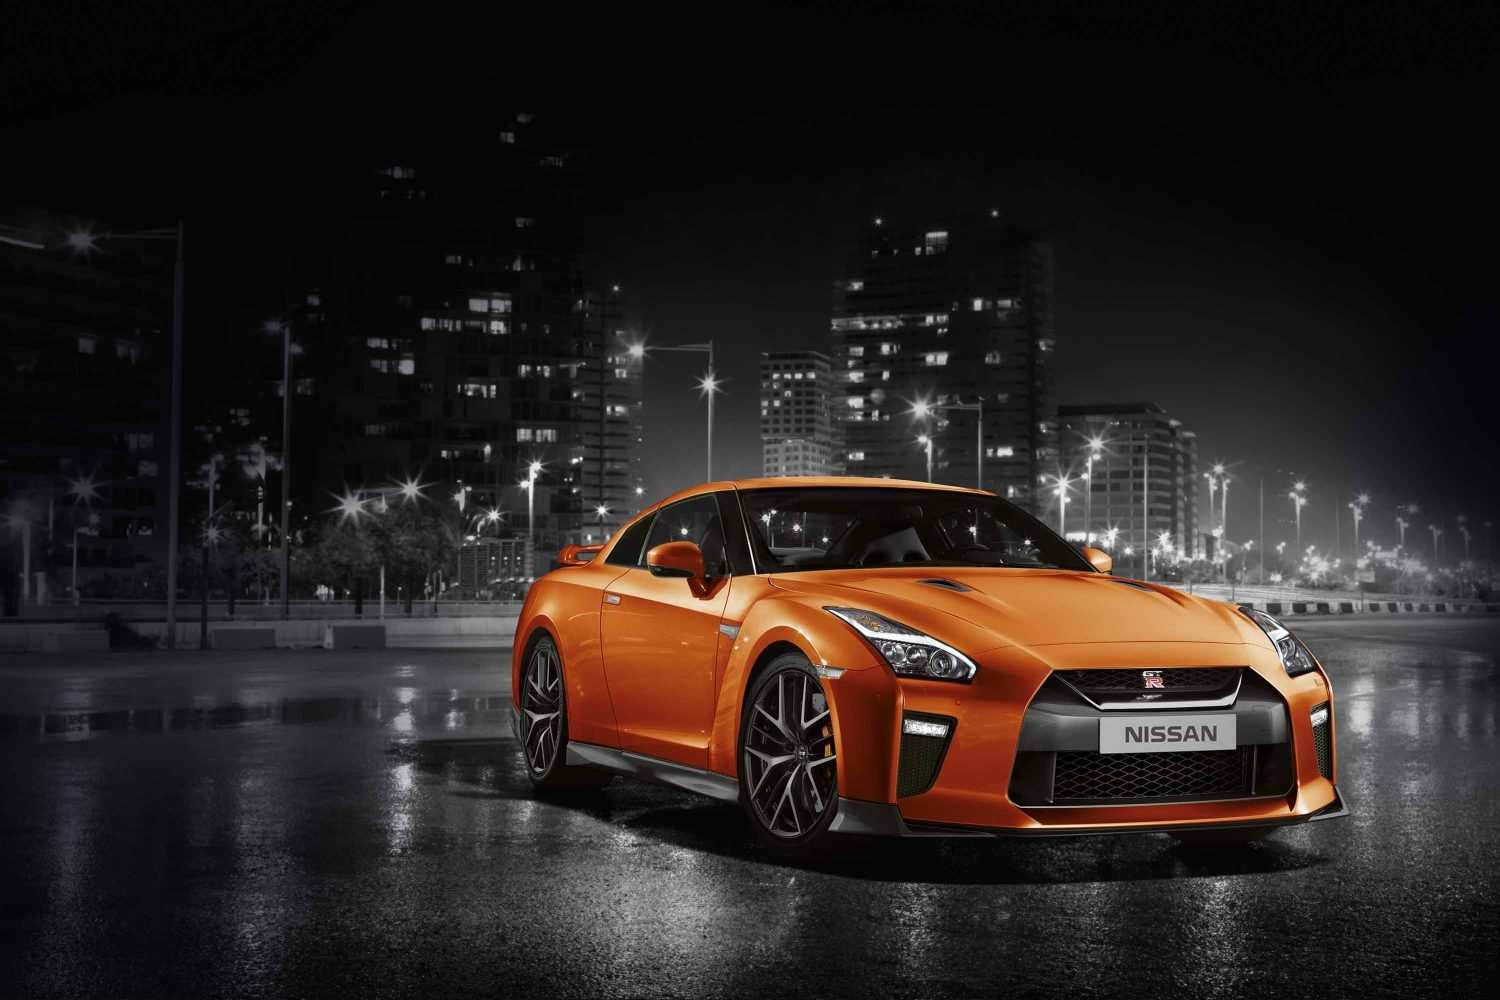 17 All New Nissan Gtr Picture Speed Test for Nissan Gtr Picture